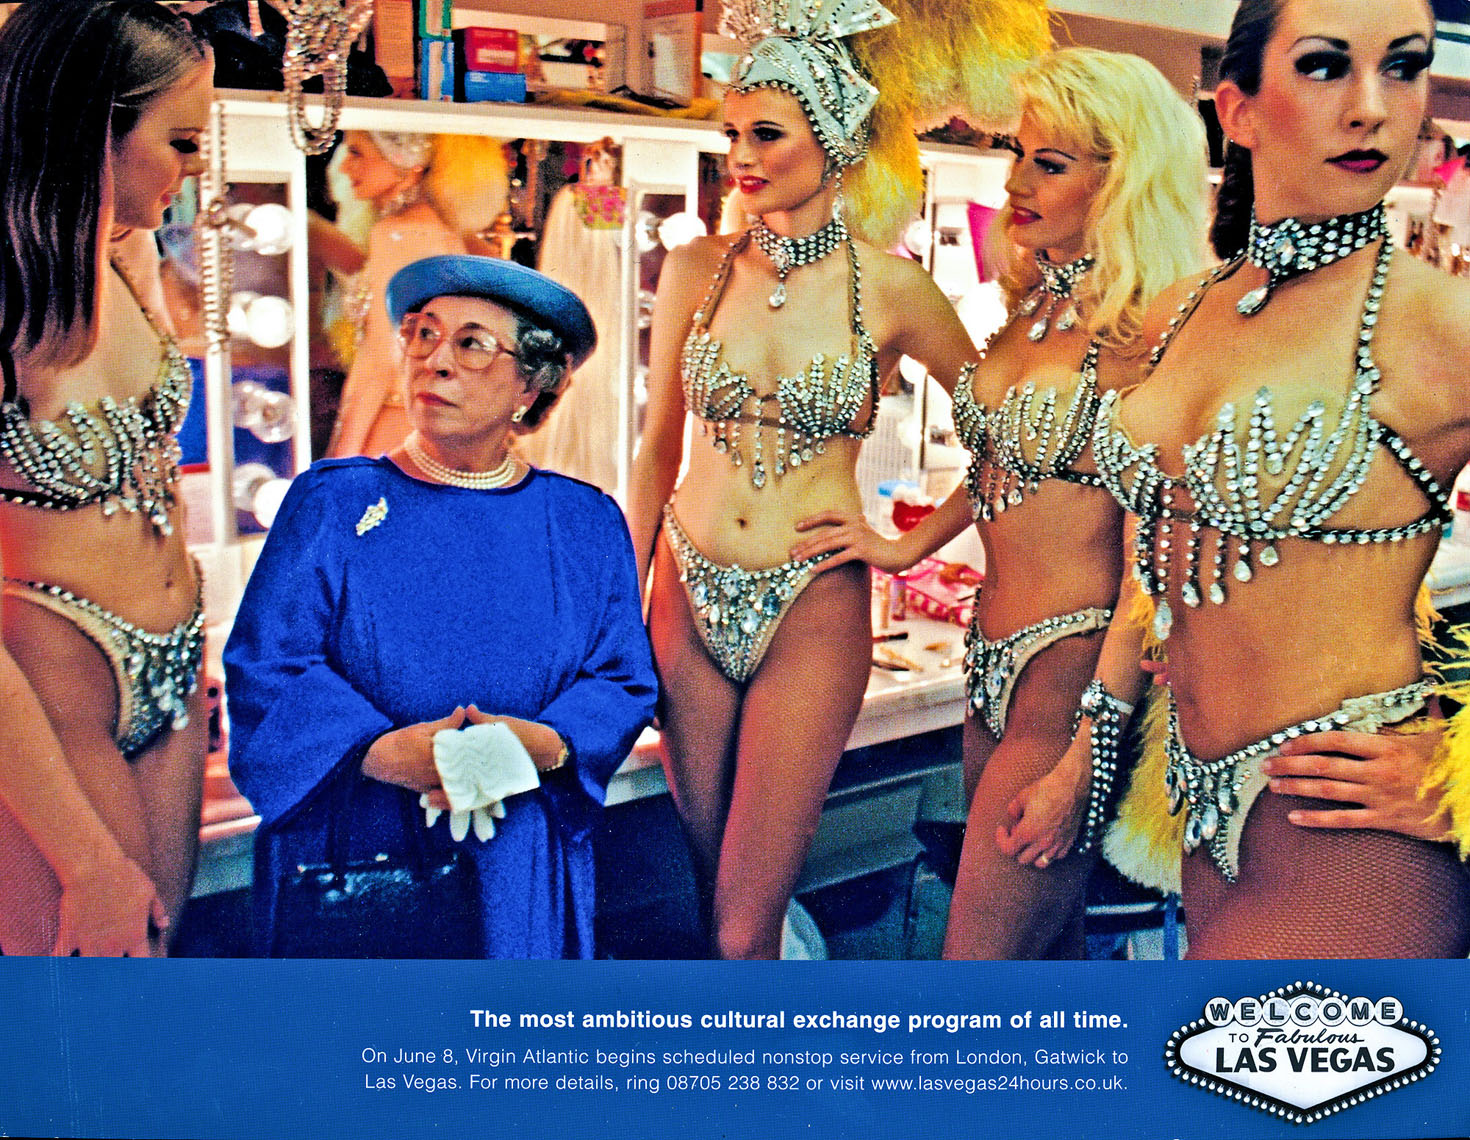 Ad for Virgin Atlantic %22 nonstops to Las Vegas %22  Queen with showgirls,  agency- R & R Partners